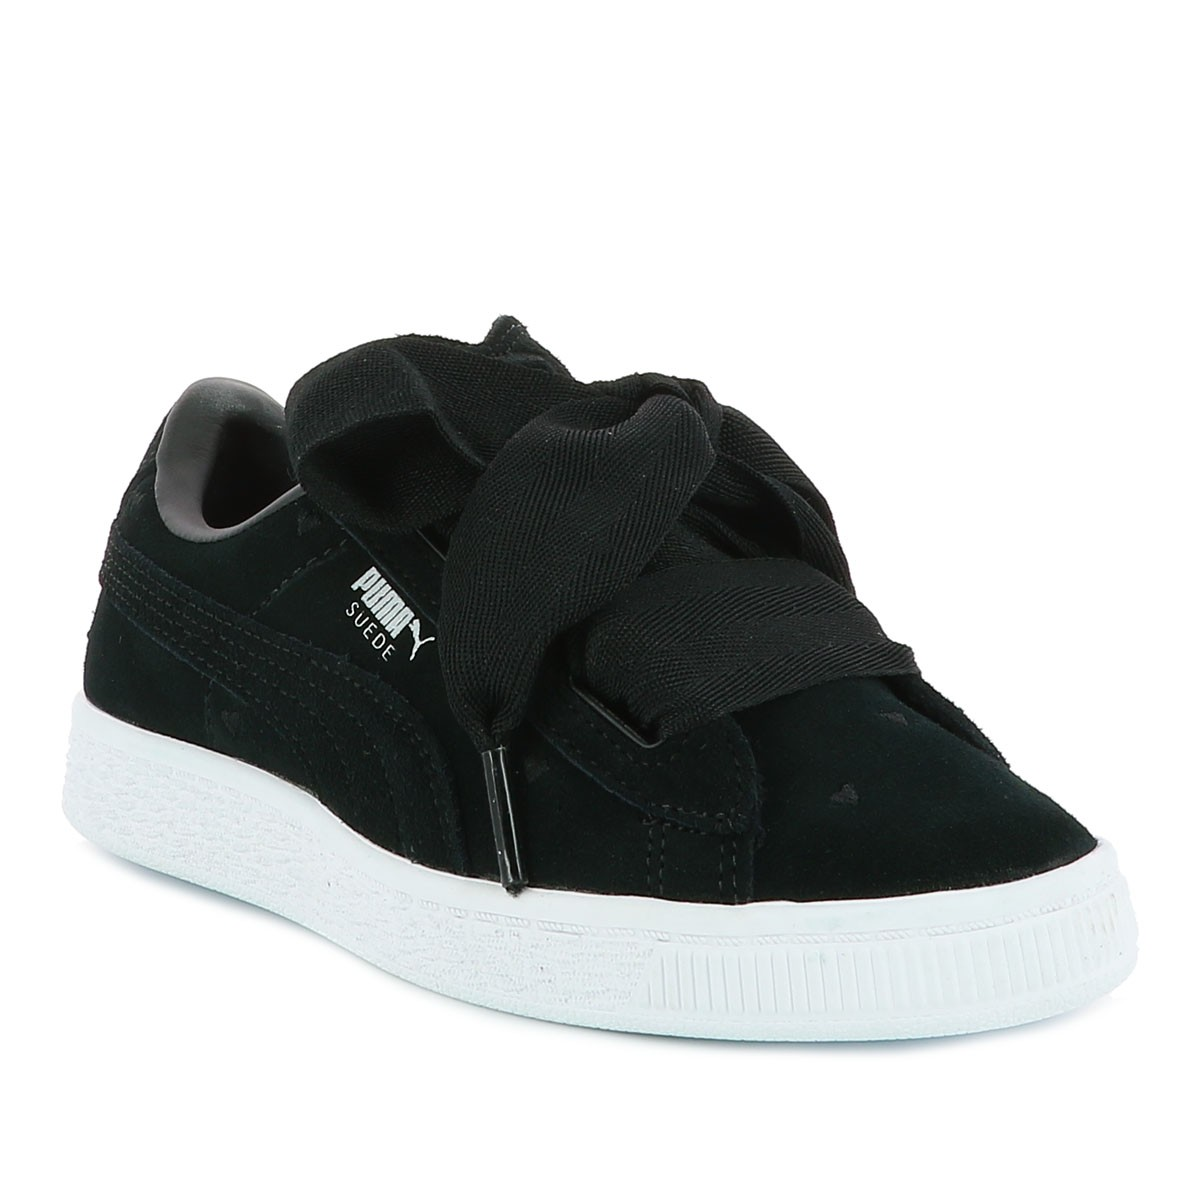 2619c35ab9 Baskets Suede Heart Valentine fille noir Puma- CCV Mode